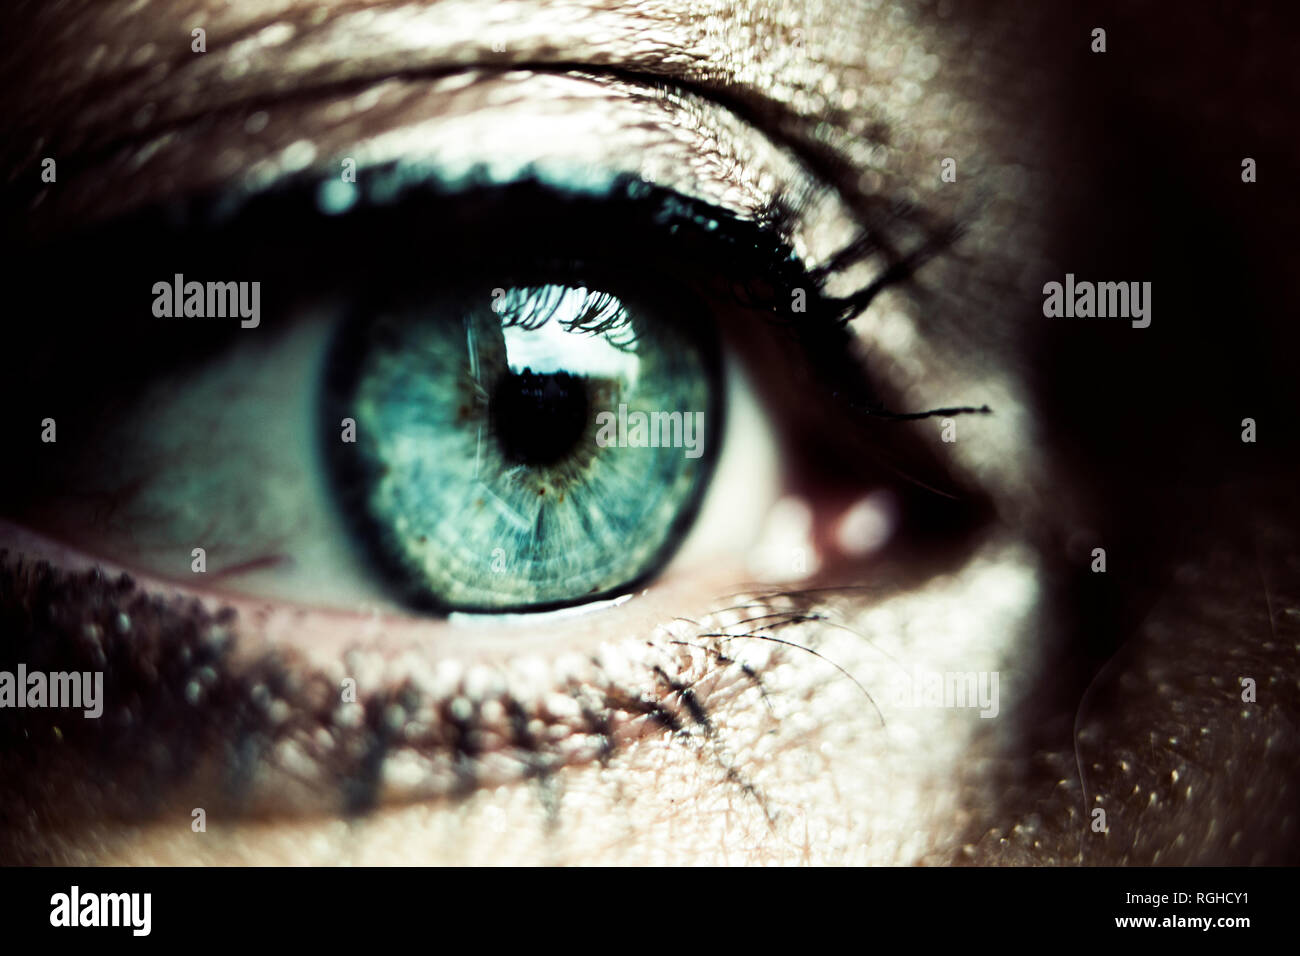 Green eye of made-up woman, close-up Stock Photo